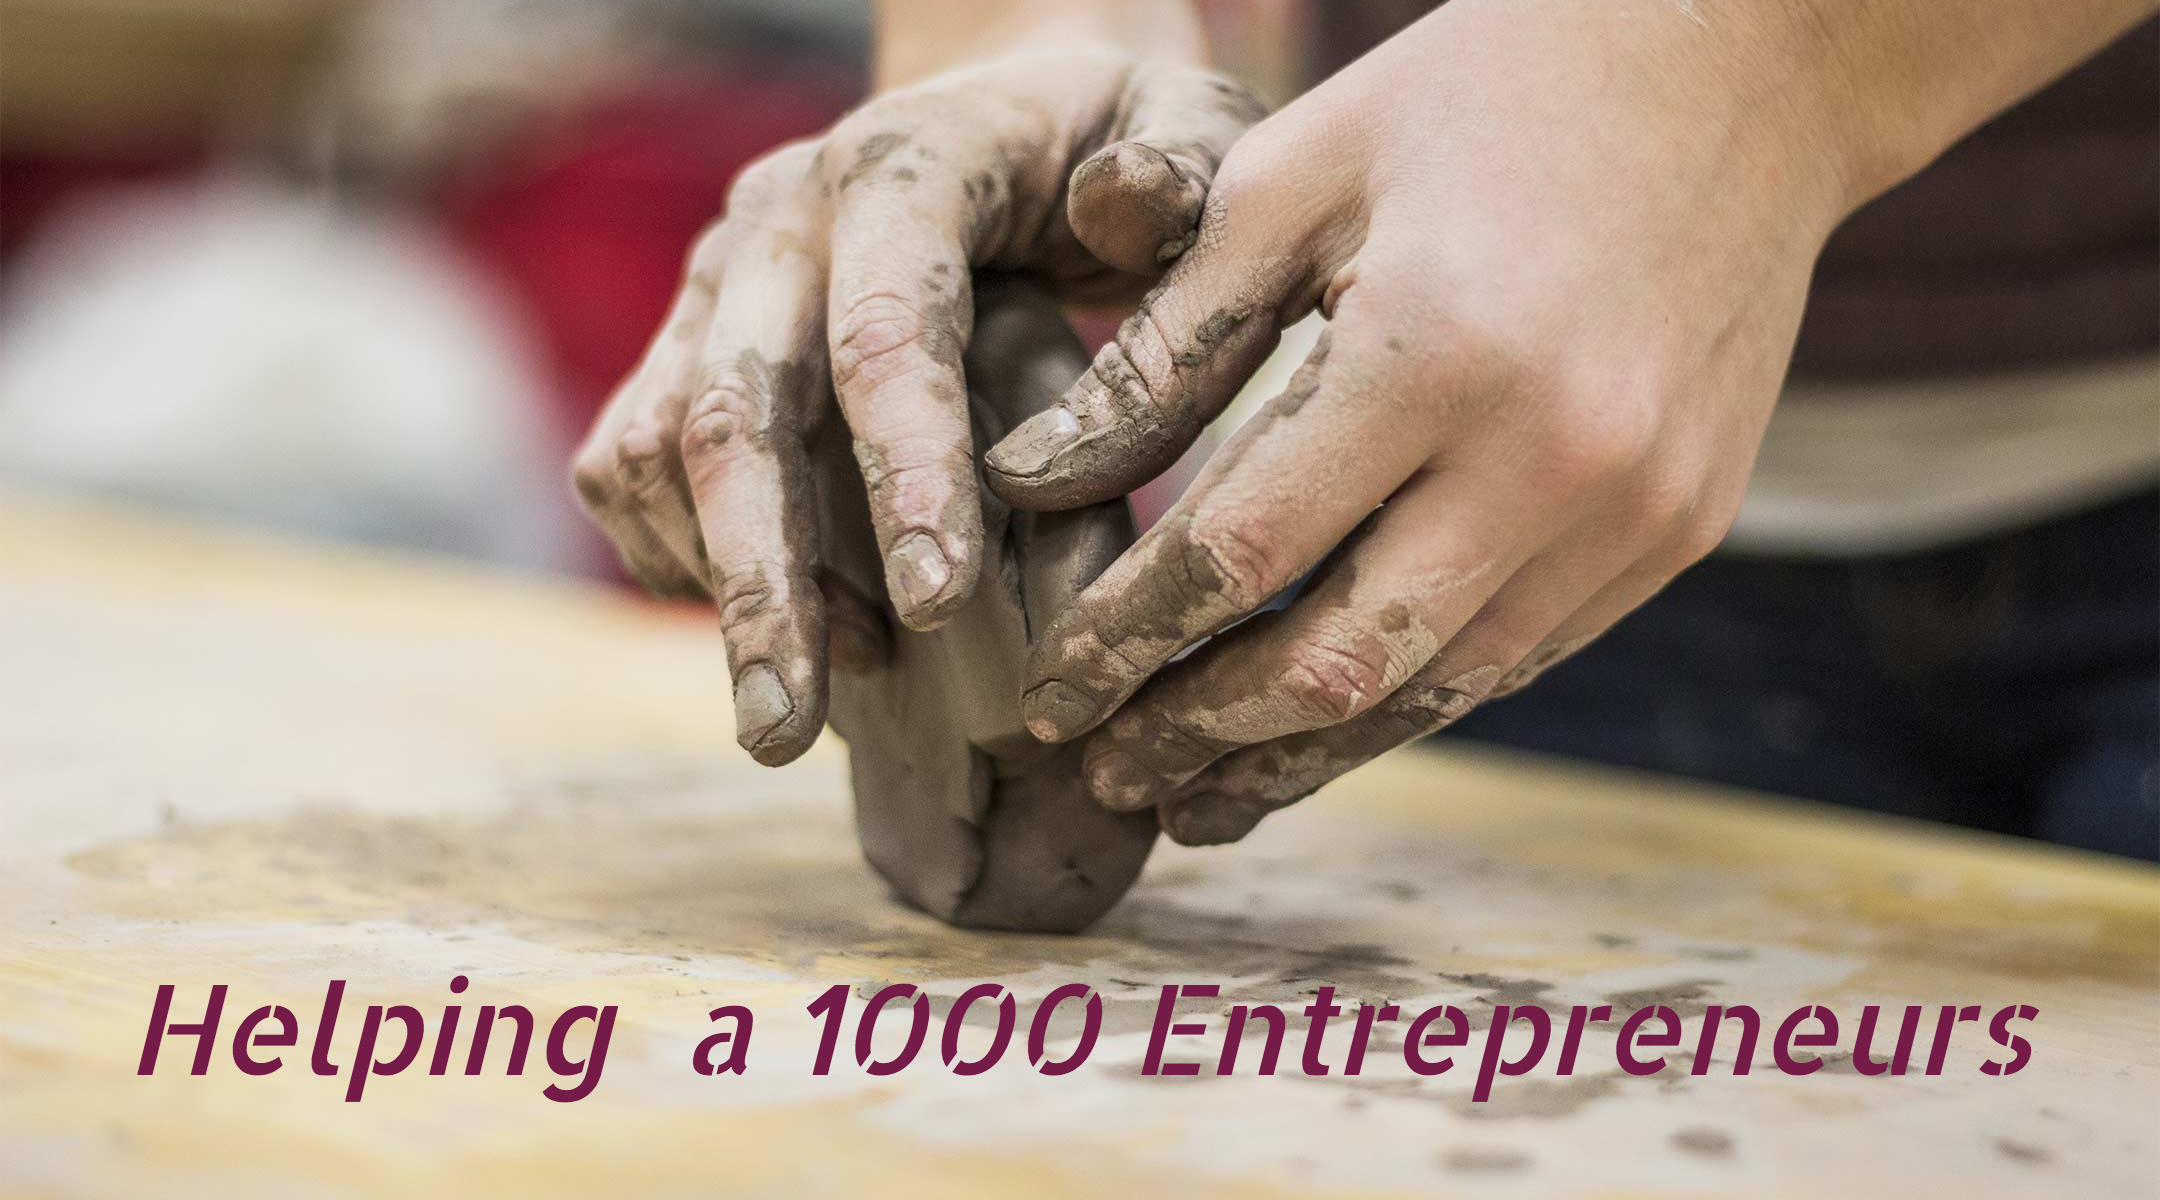 Helping a 1000 Entrepreneurs